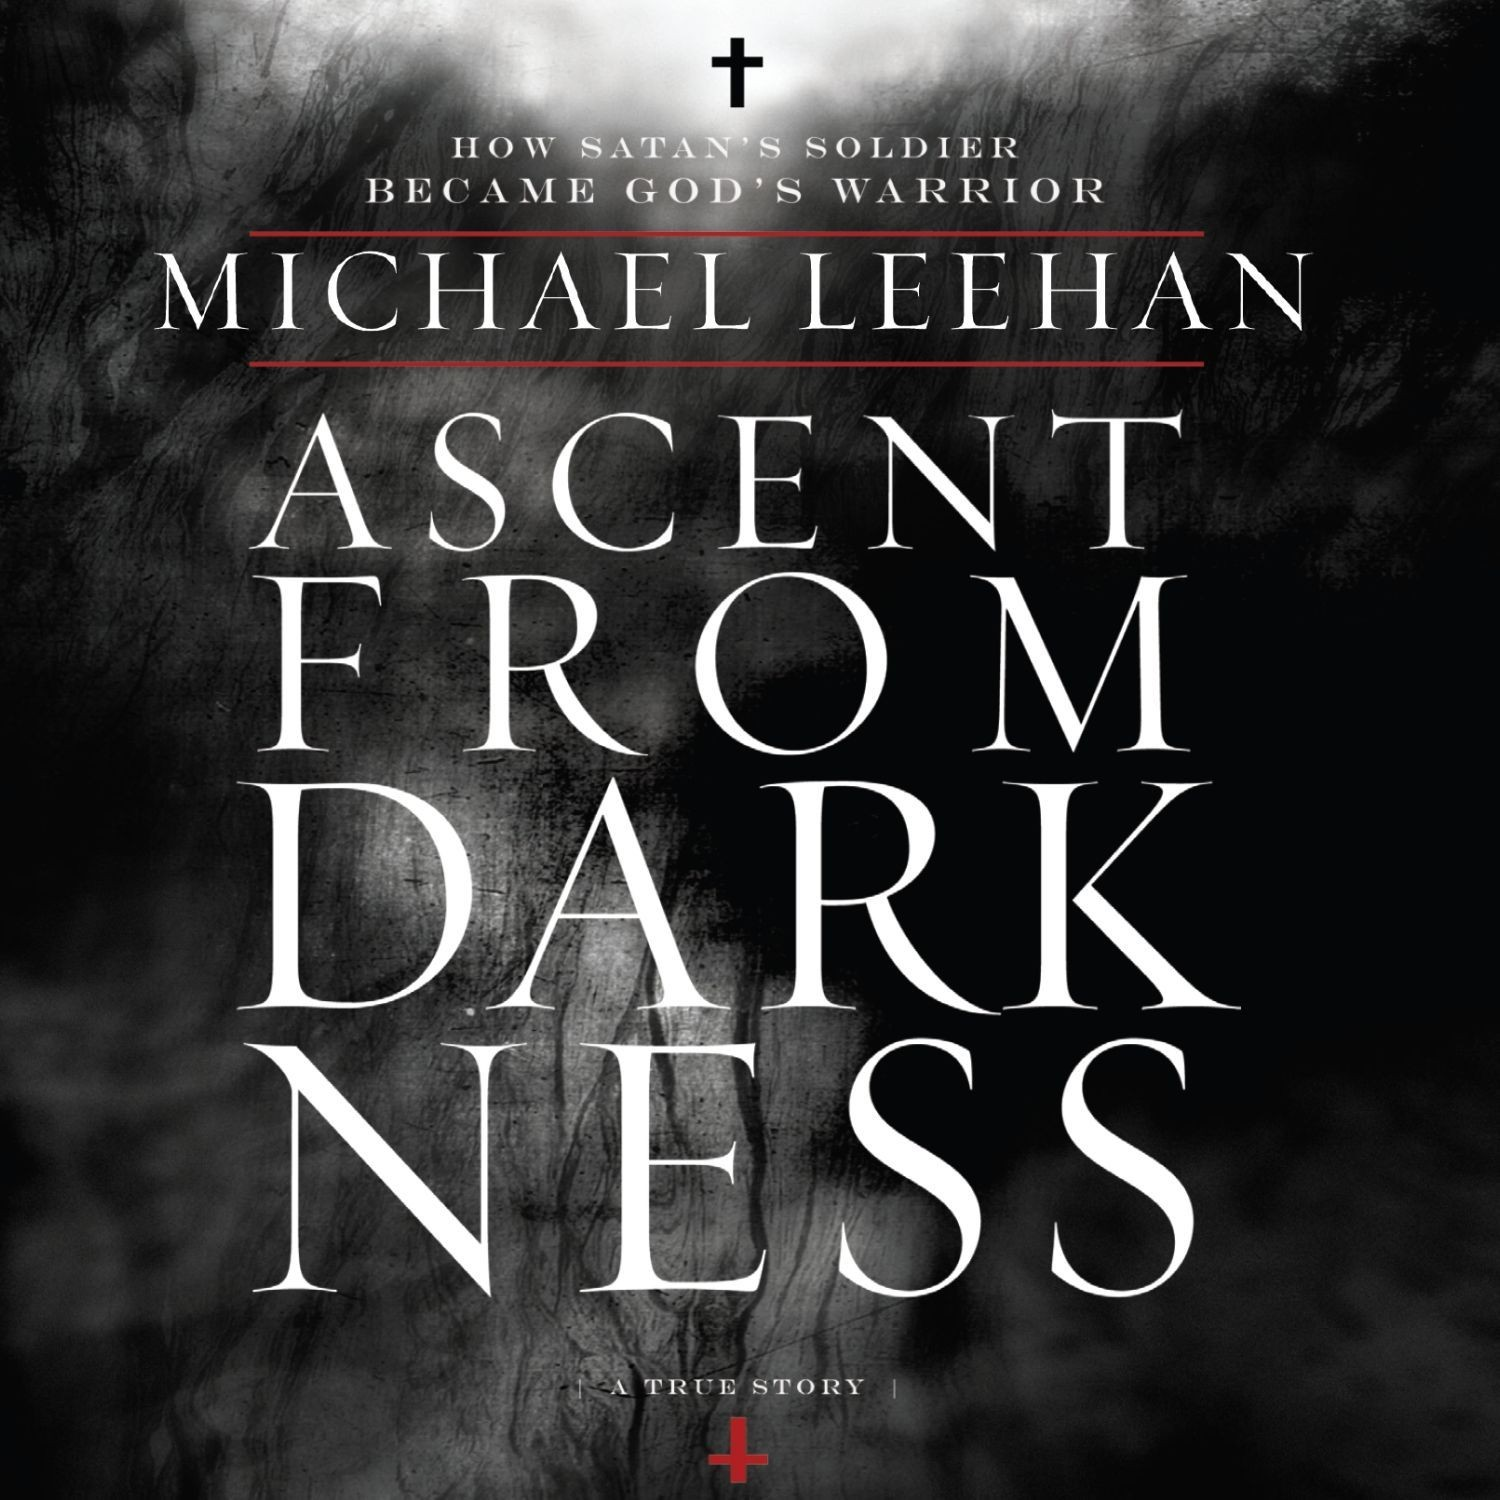 Printable Ascent from Darkness: How Satan's Soldier Became God's Warrior Audiobook Cover Art